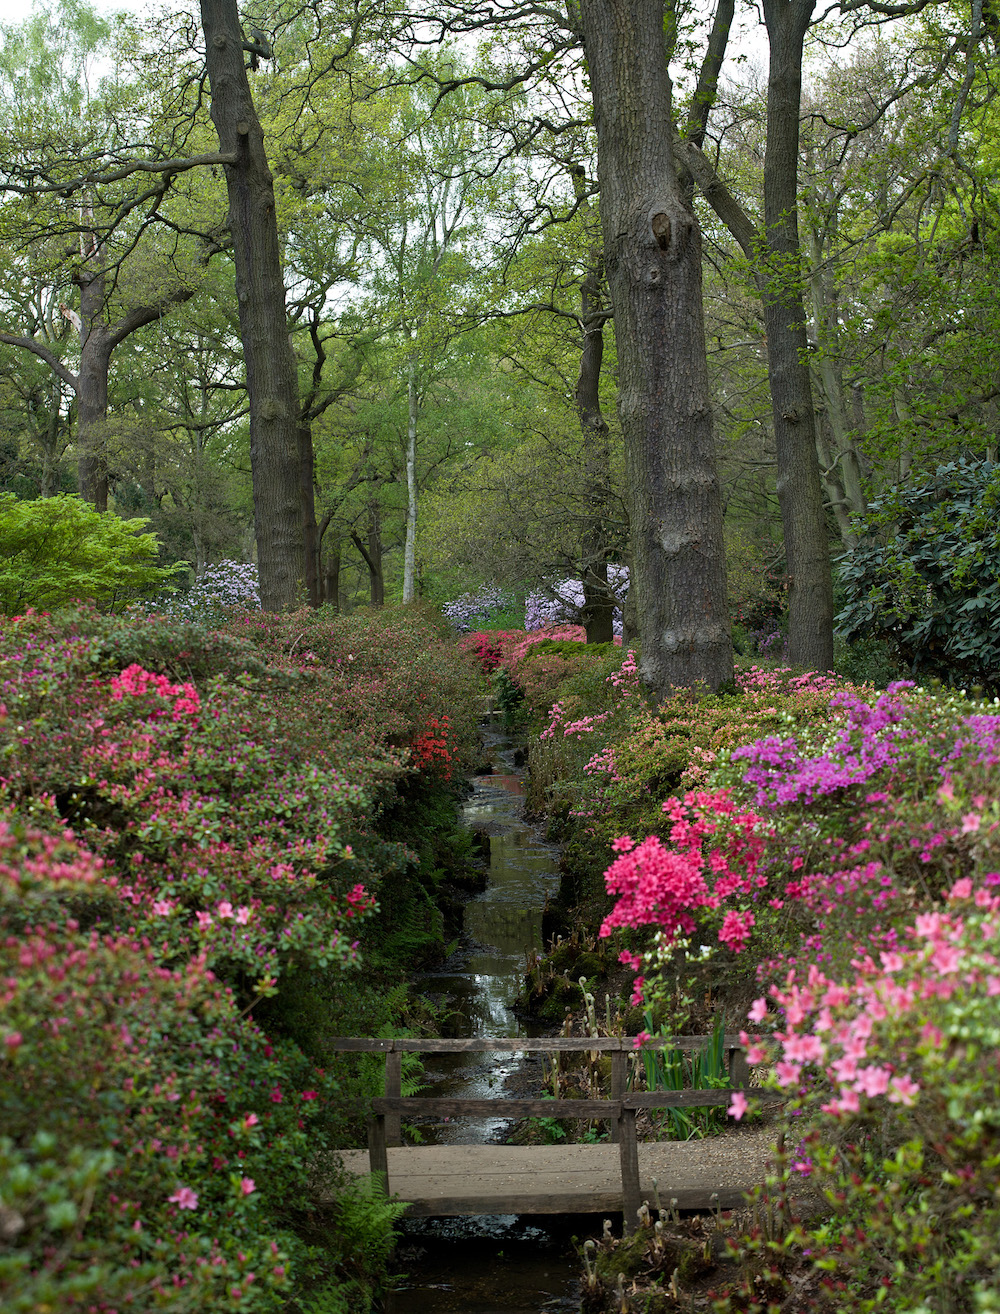 Royal Park in London: Isabella Plantation at Richmond Park. Photo Credit: © Diliff via Wikimedia Commons.